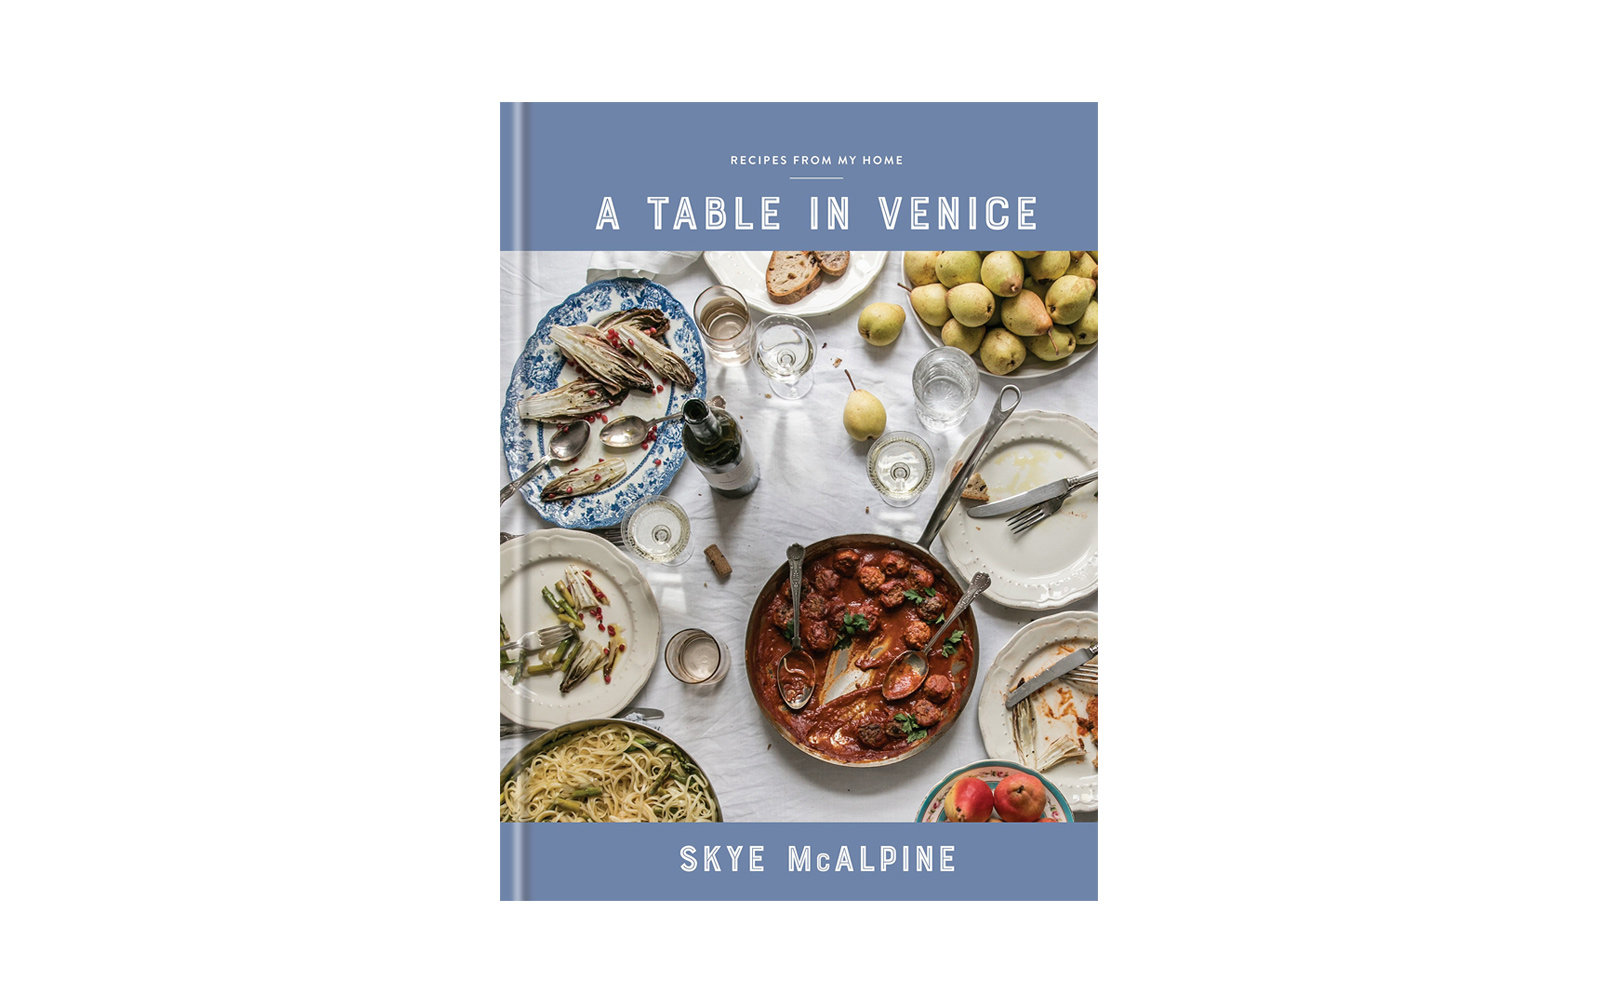 37 New International Cookbooks for the Traveling Home Cook | Travel ...